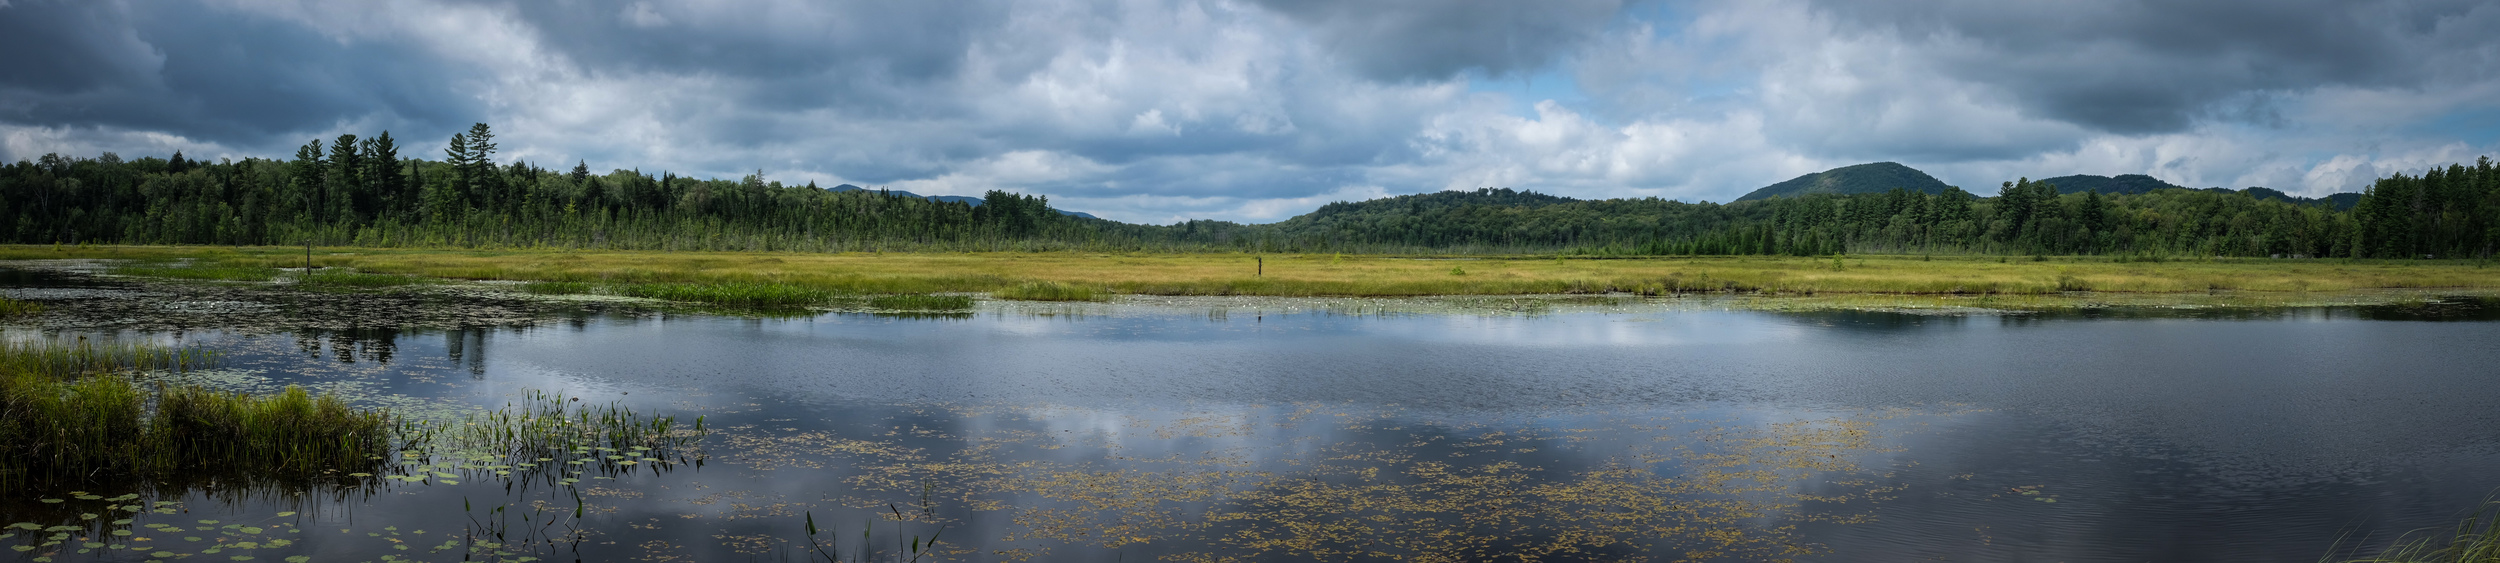 Panoramic view of Heron Marsh located at the Paul Smith's College Visitor Interpretive Center. I'm sure this would be spectacular with early morning or late afternoon light, but the X100S did just fine at noon. 1/850 @ f8, ISO 400.